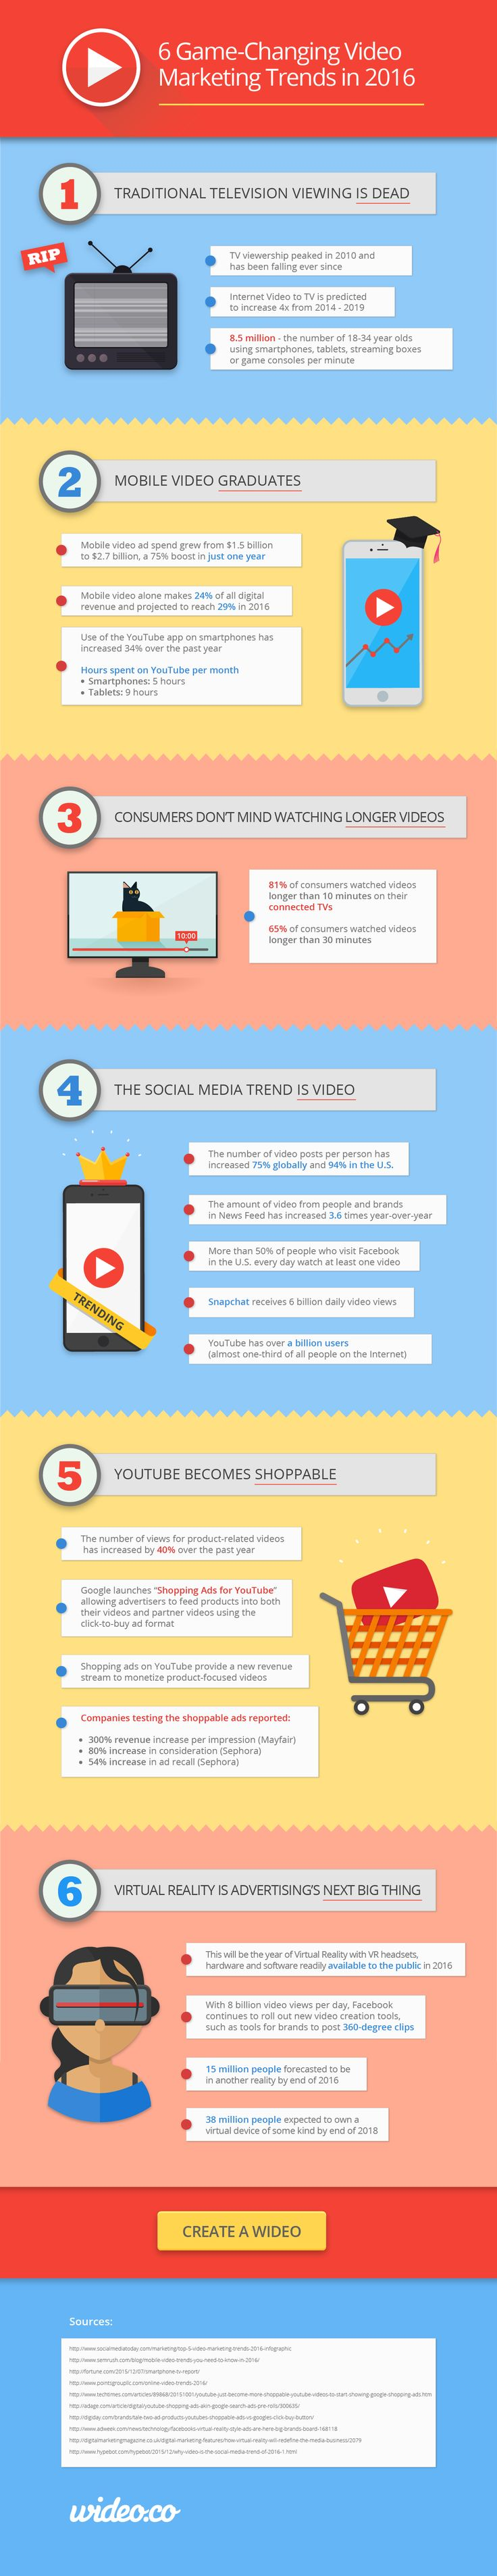 Digital Marketing Trends To Look Forward In 2016-17, 6 Game-Changing Video Marketing Trends in 2016